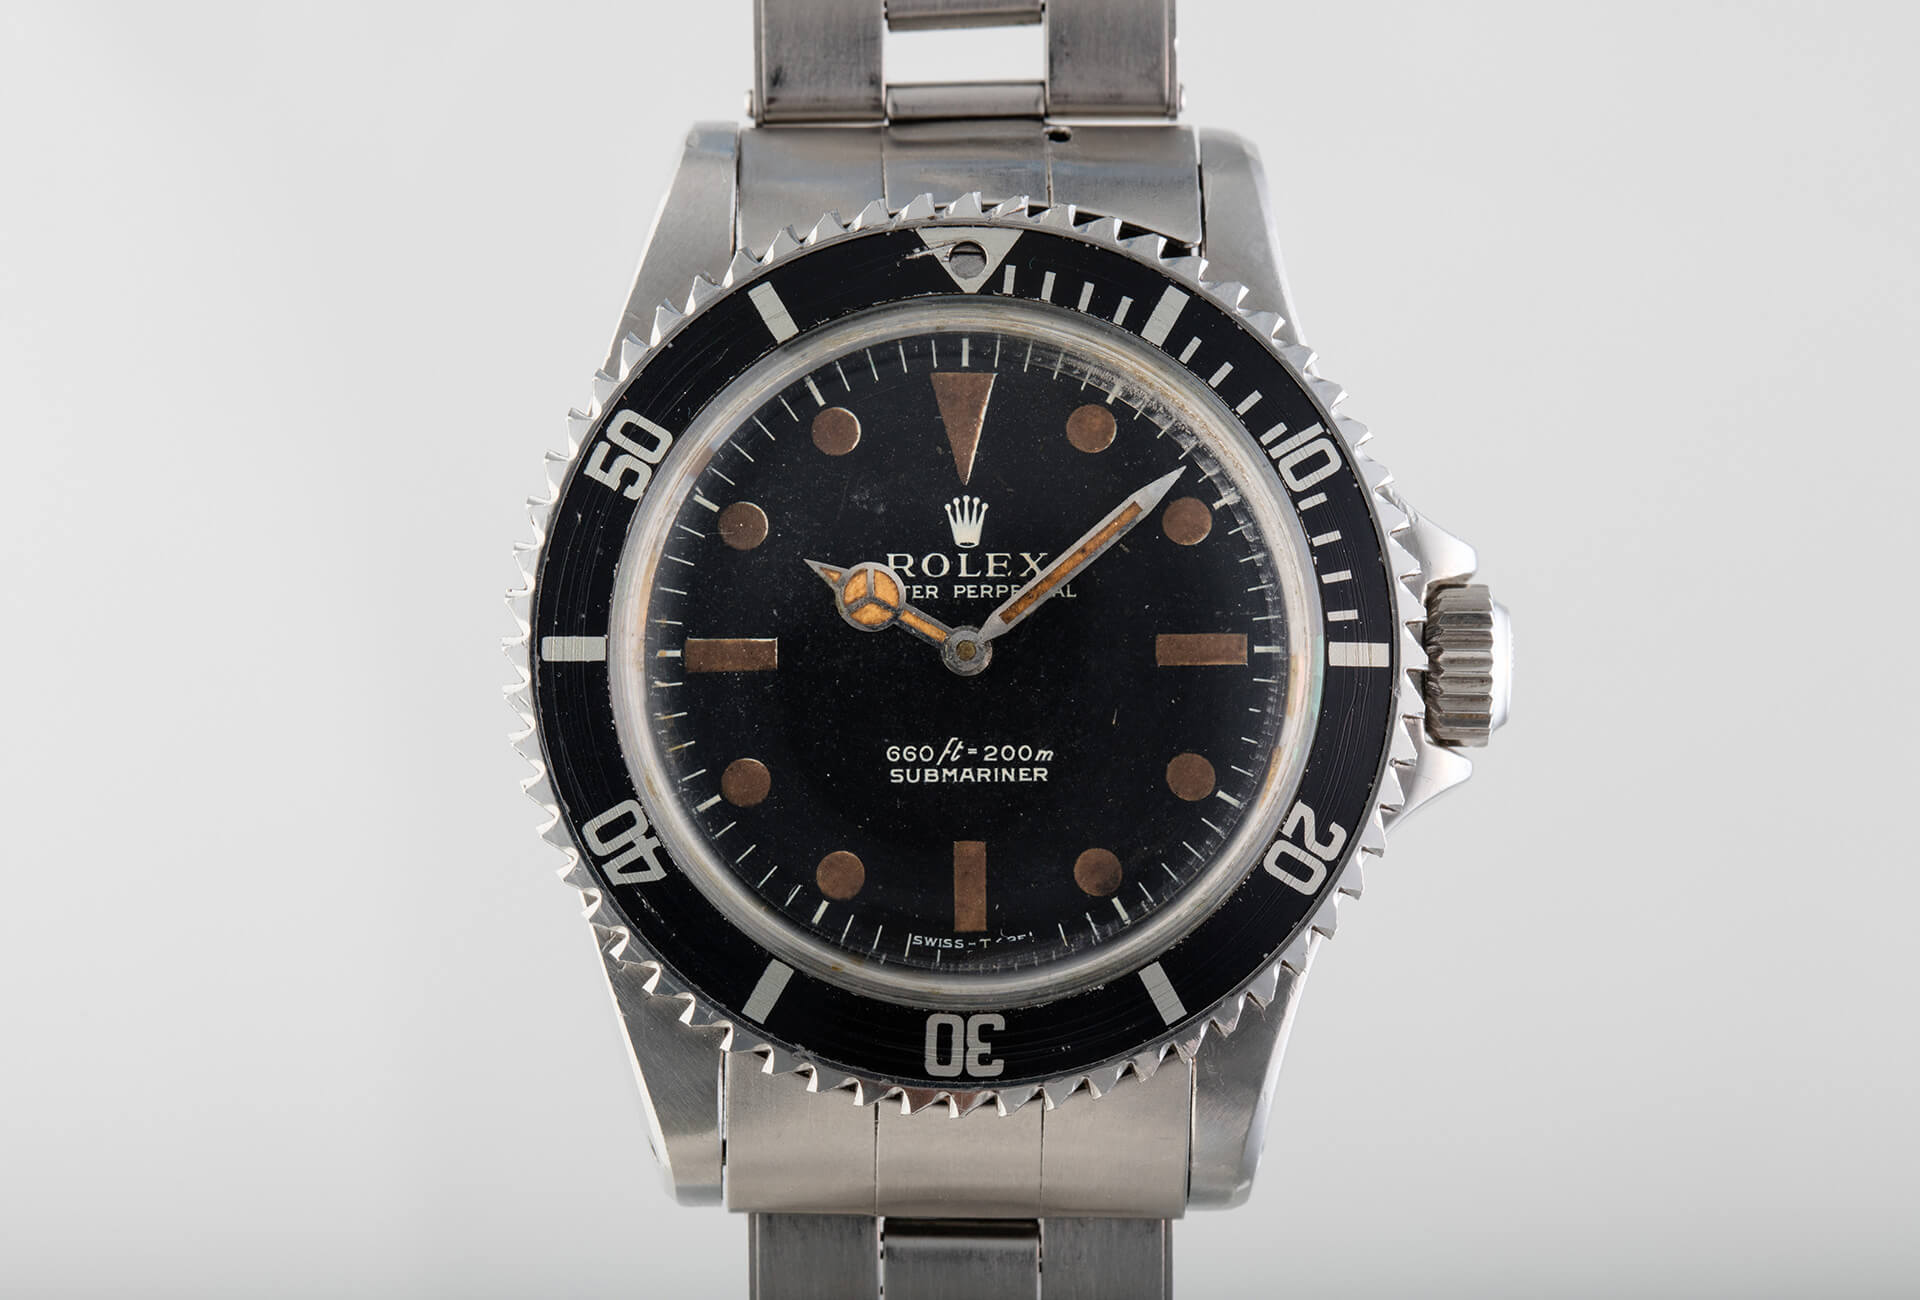 Roger Moore As James Bond Wore This Submariner Ref 5513 Modified By Q